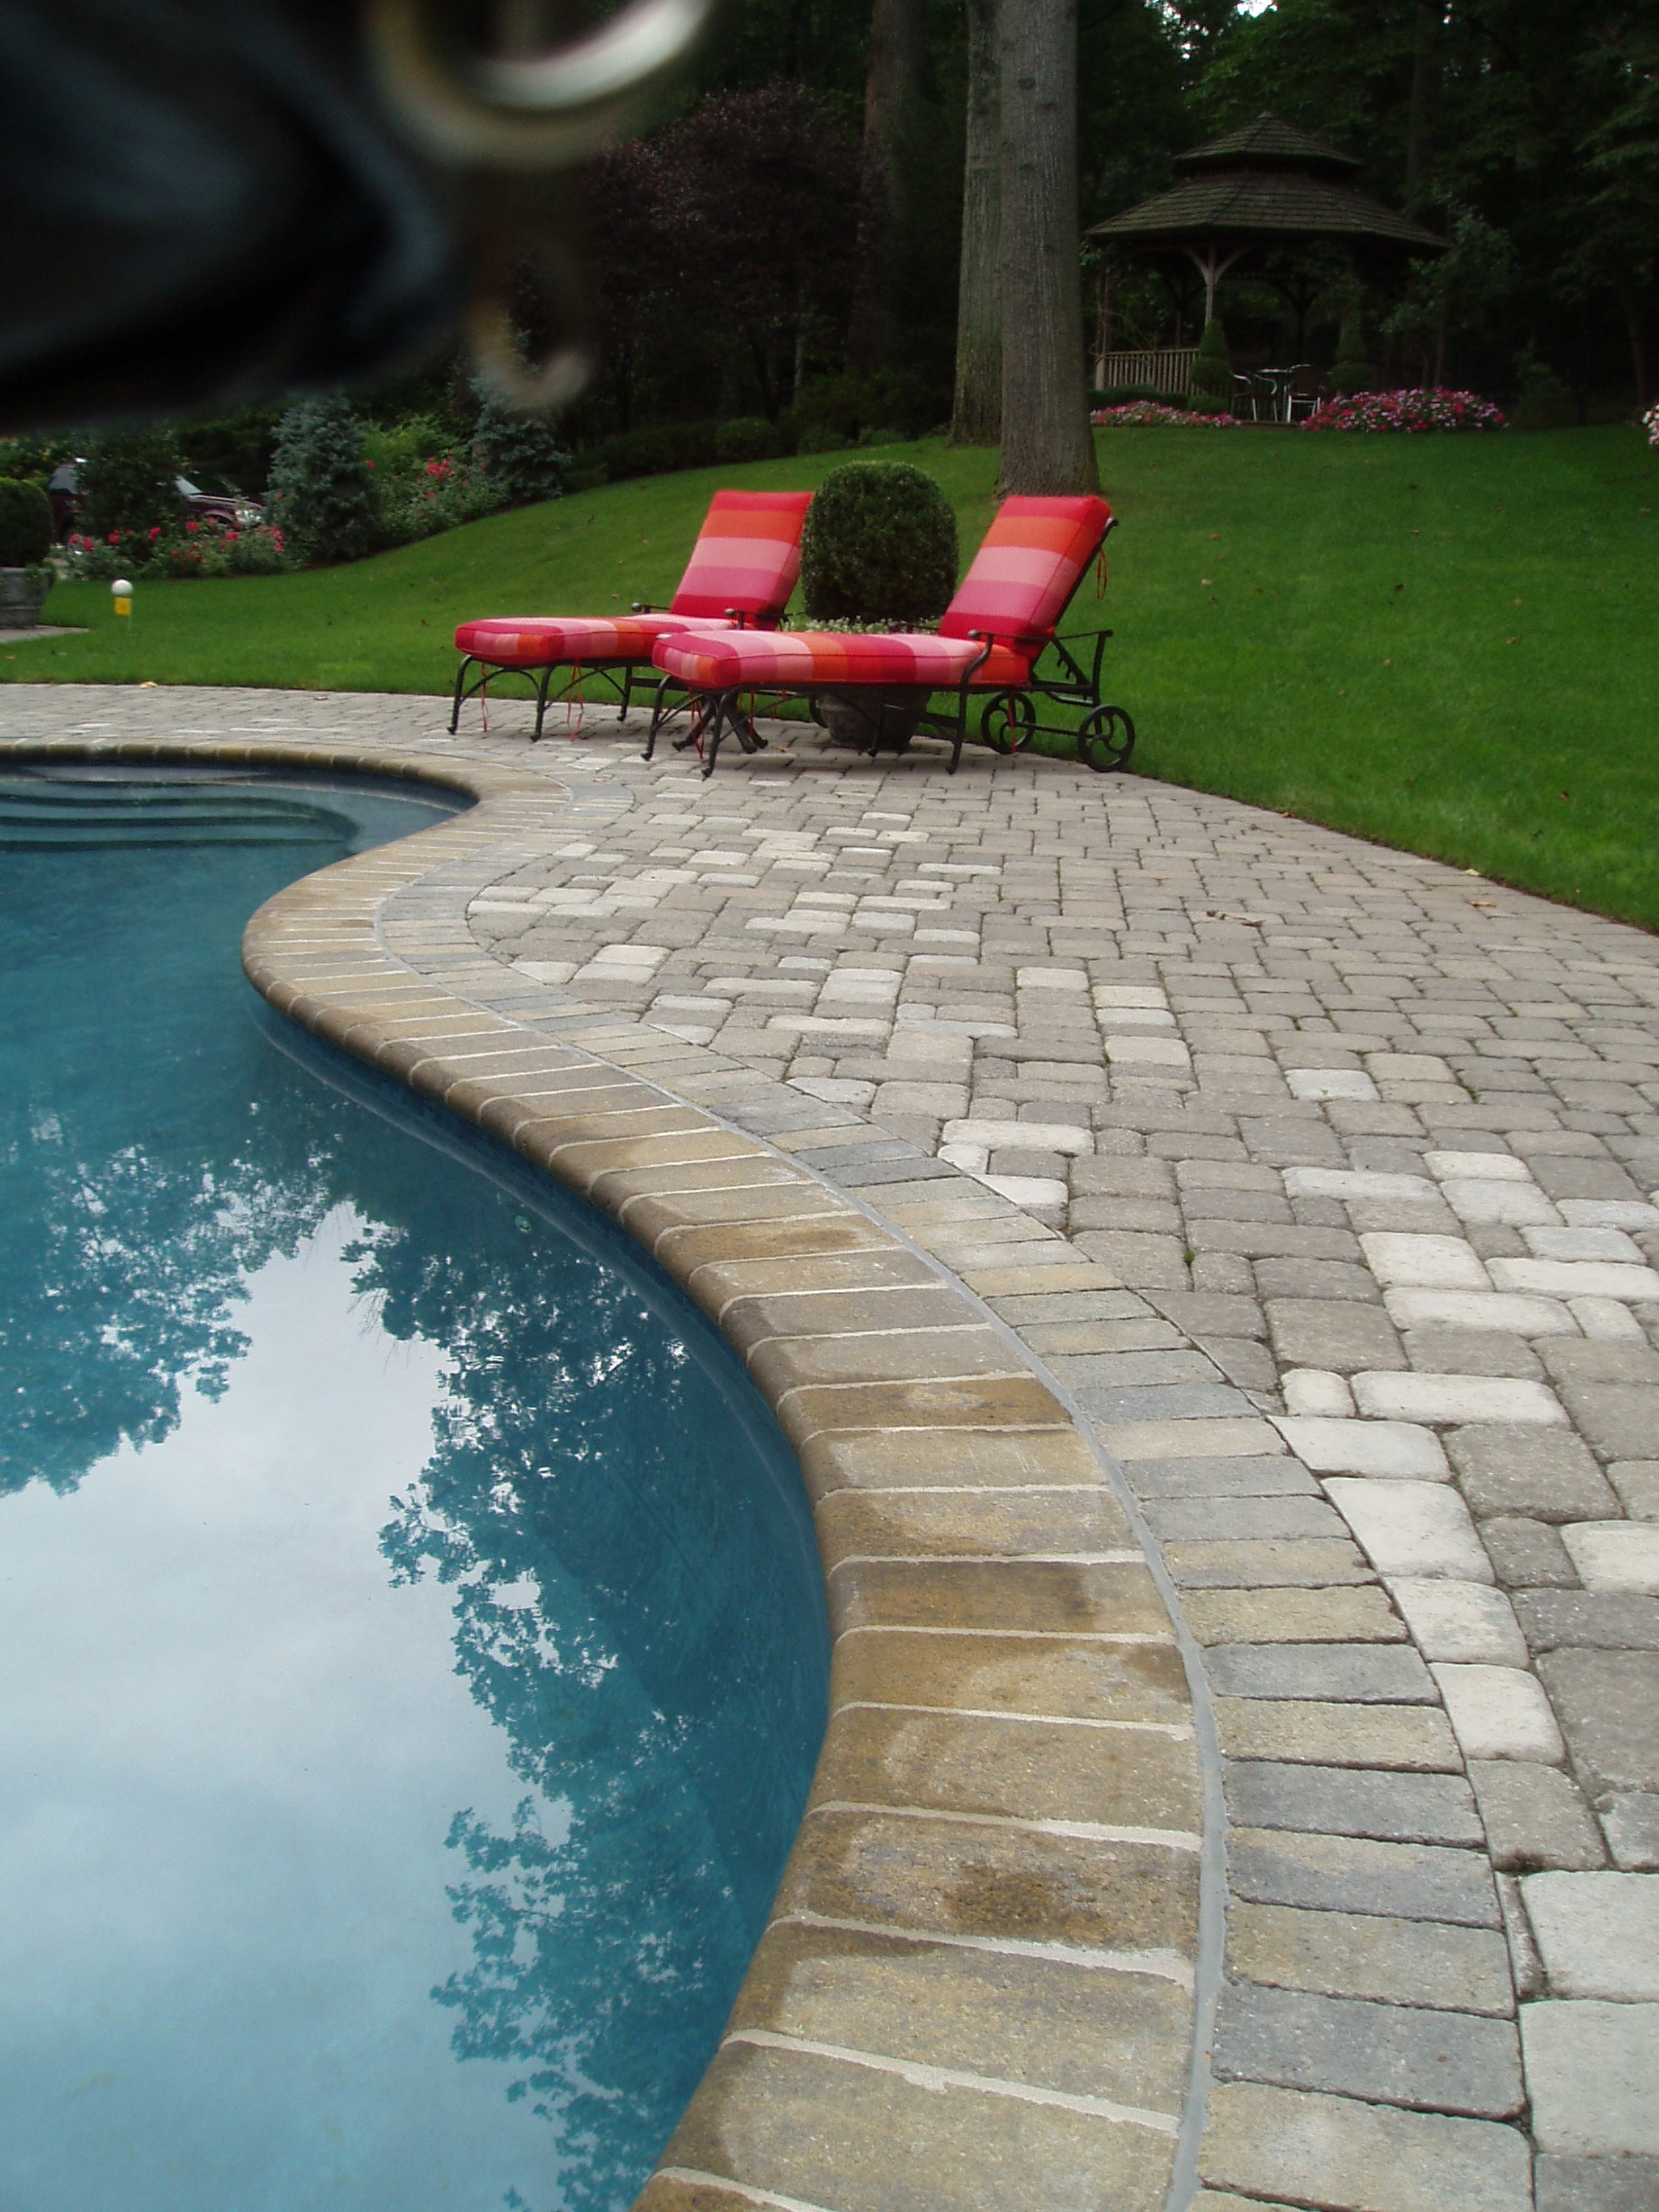 Bullnose Paver in Moss Blend color.